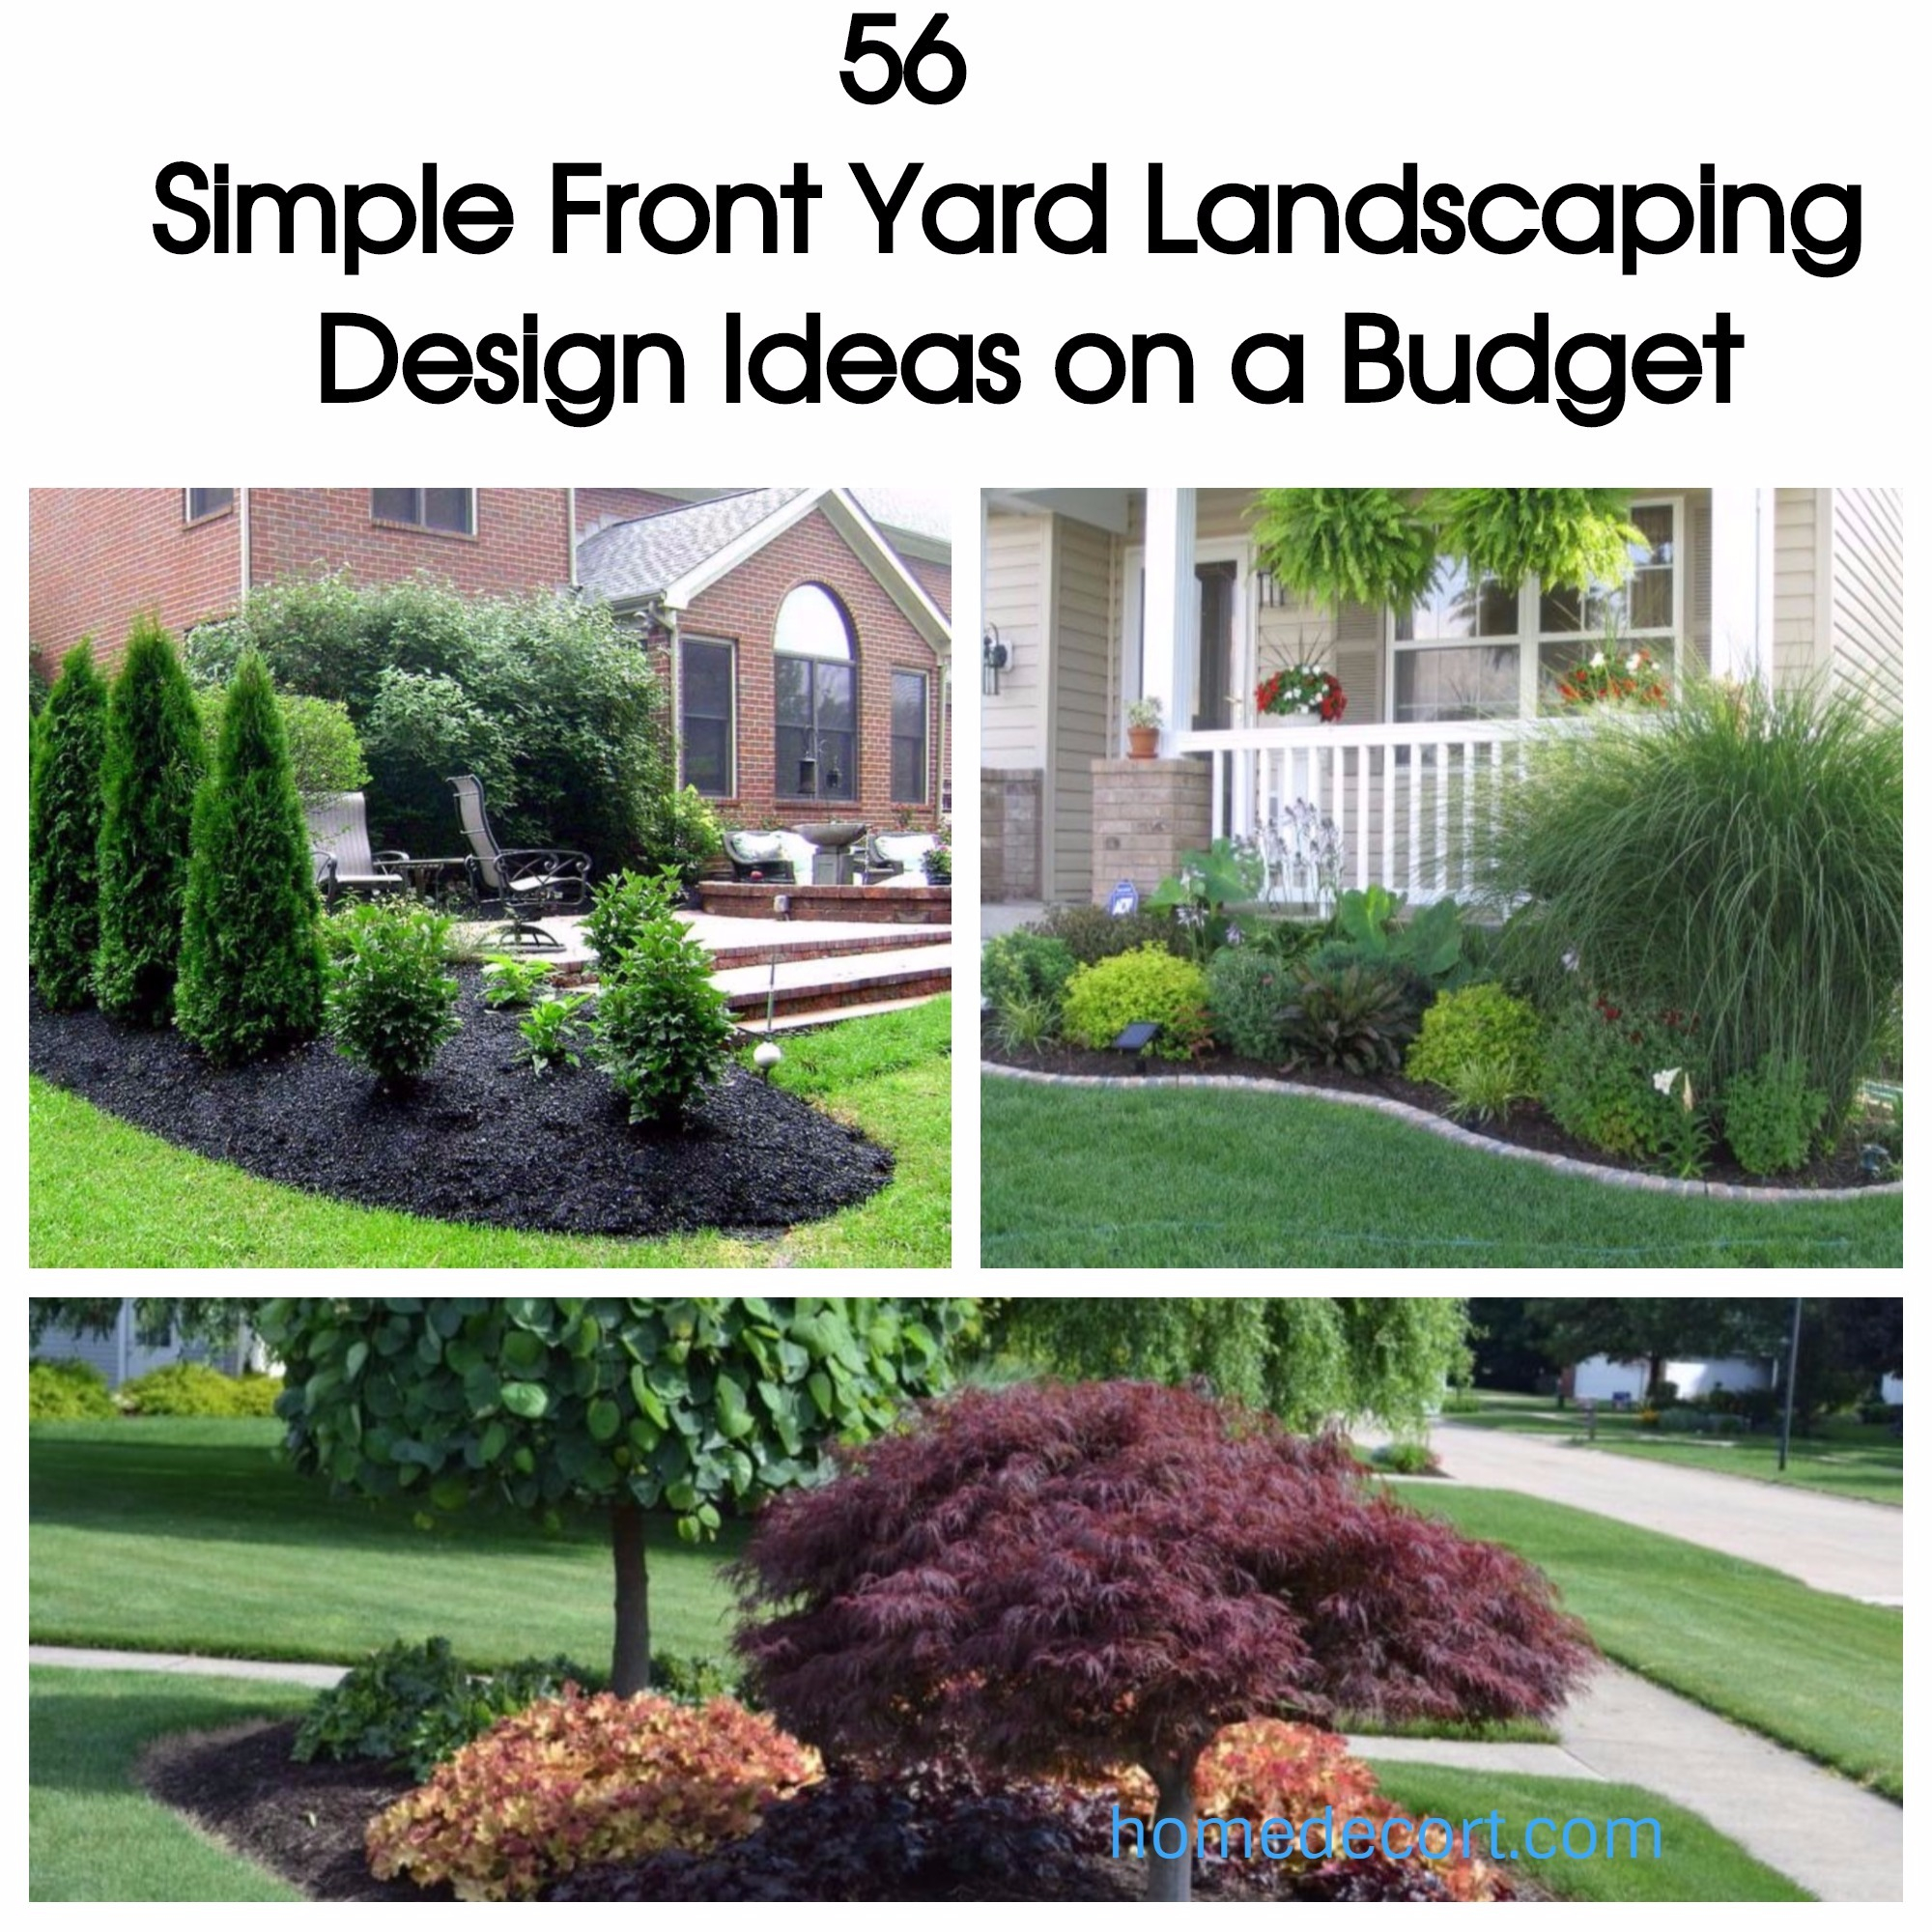 Cool 56 Simple Front Yard Landscaping Design Ideas On A Budget | Homedecort for Inspirational Landscape Design Front Yard